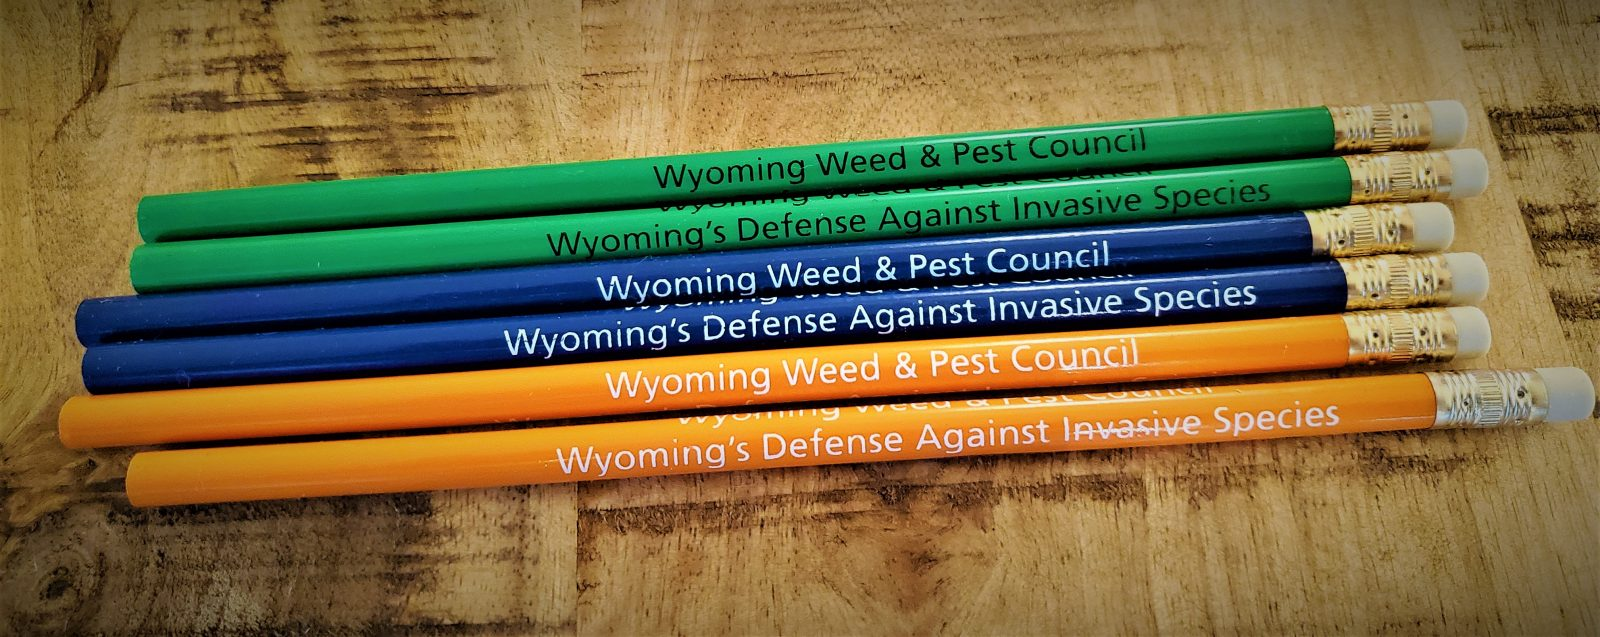 Wyoming Weed & Pest Council Pencils, Pack of 15